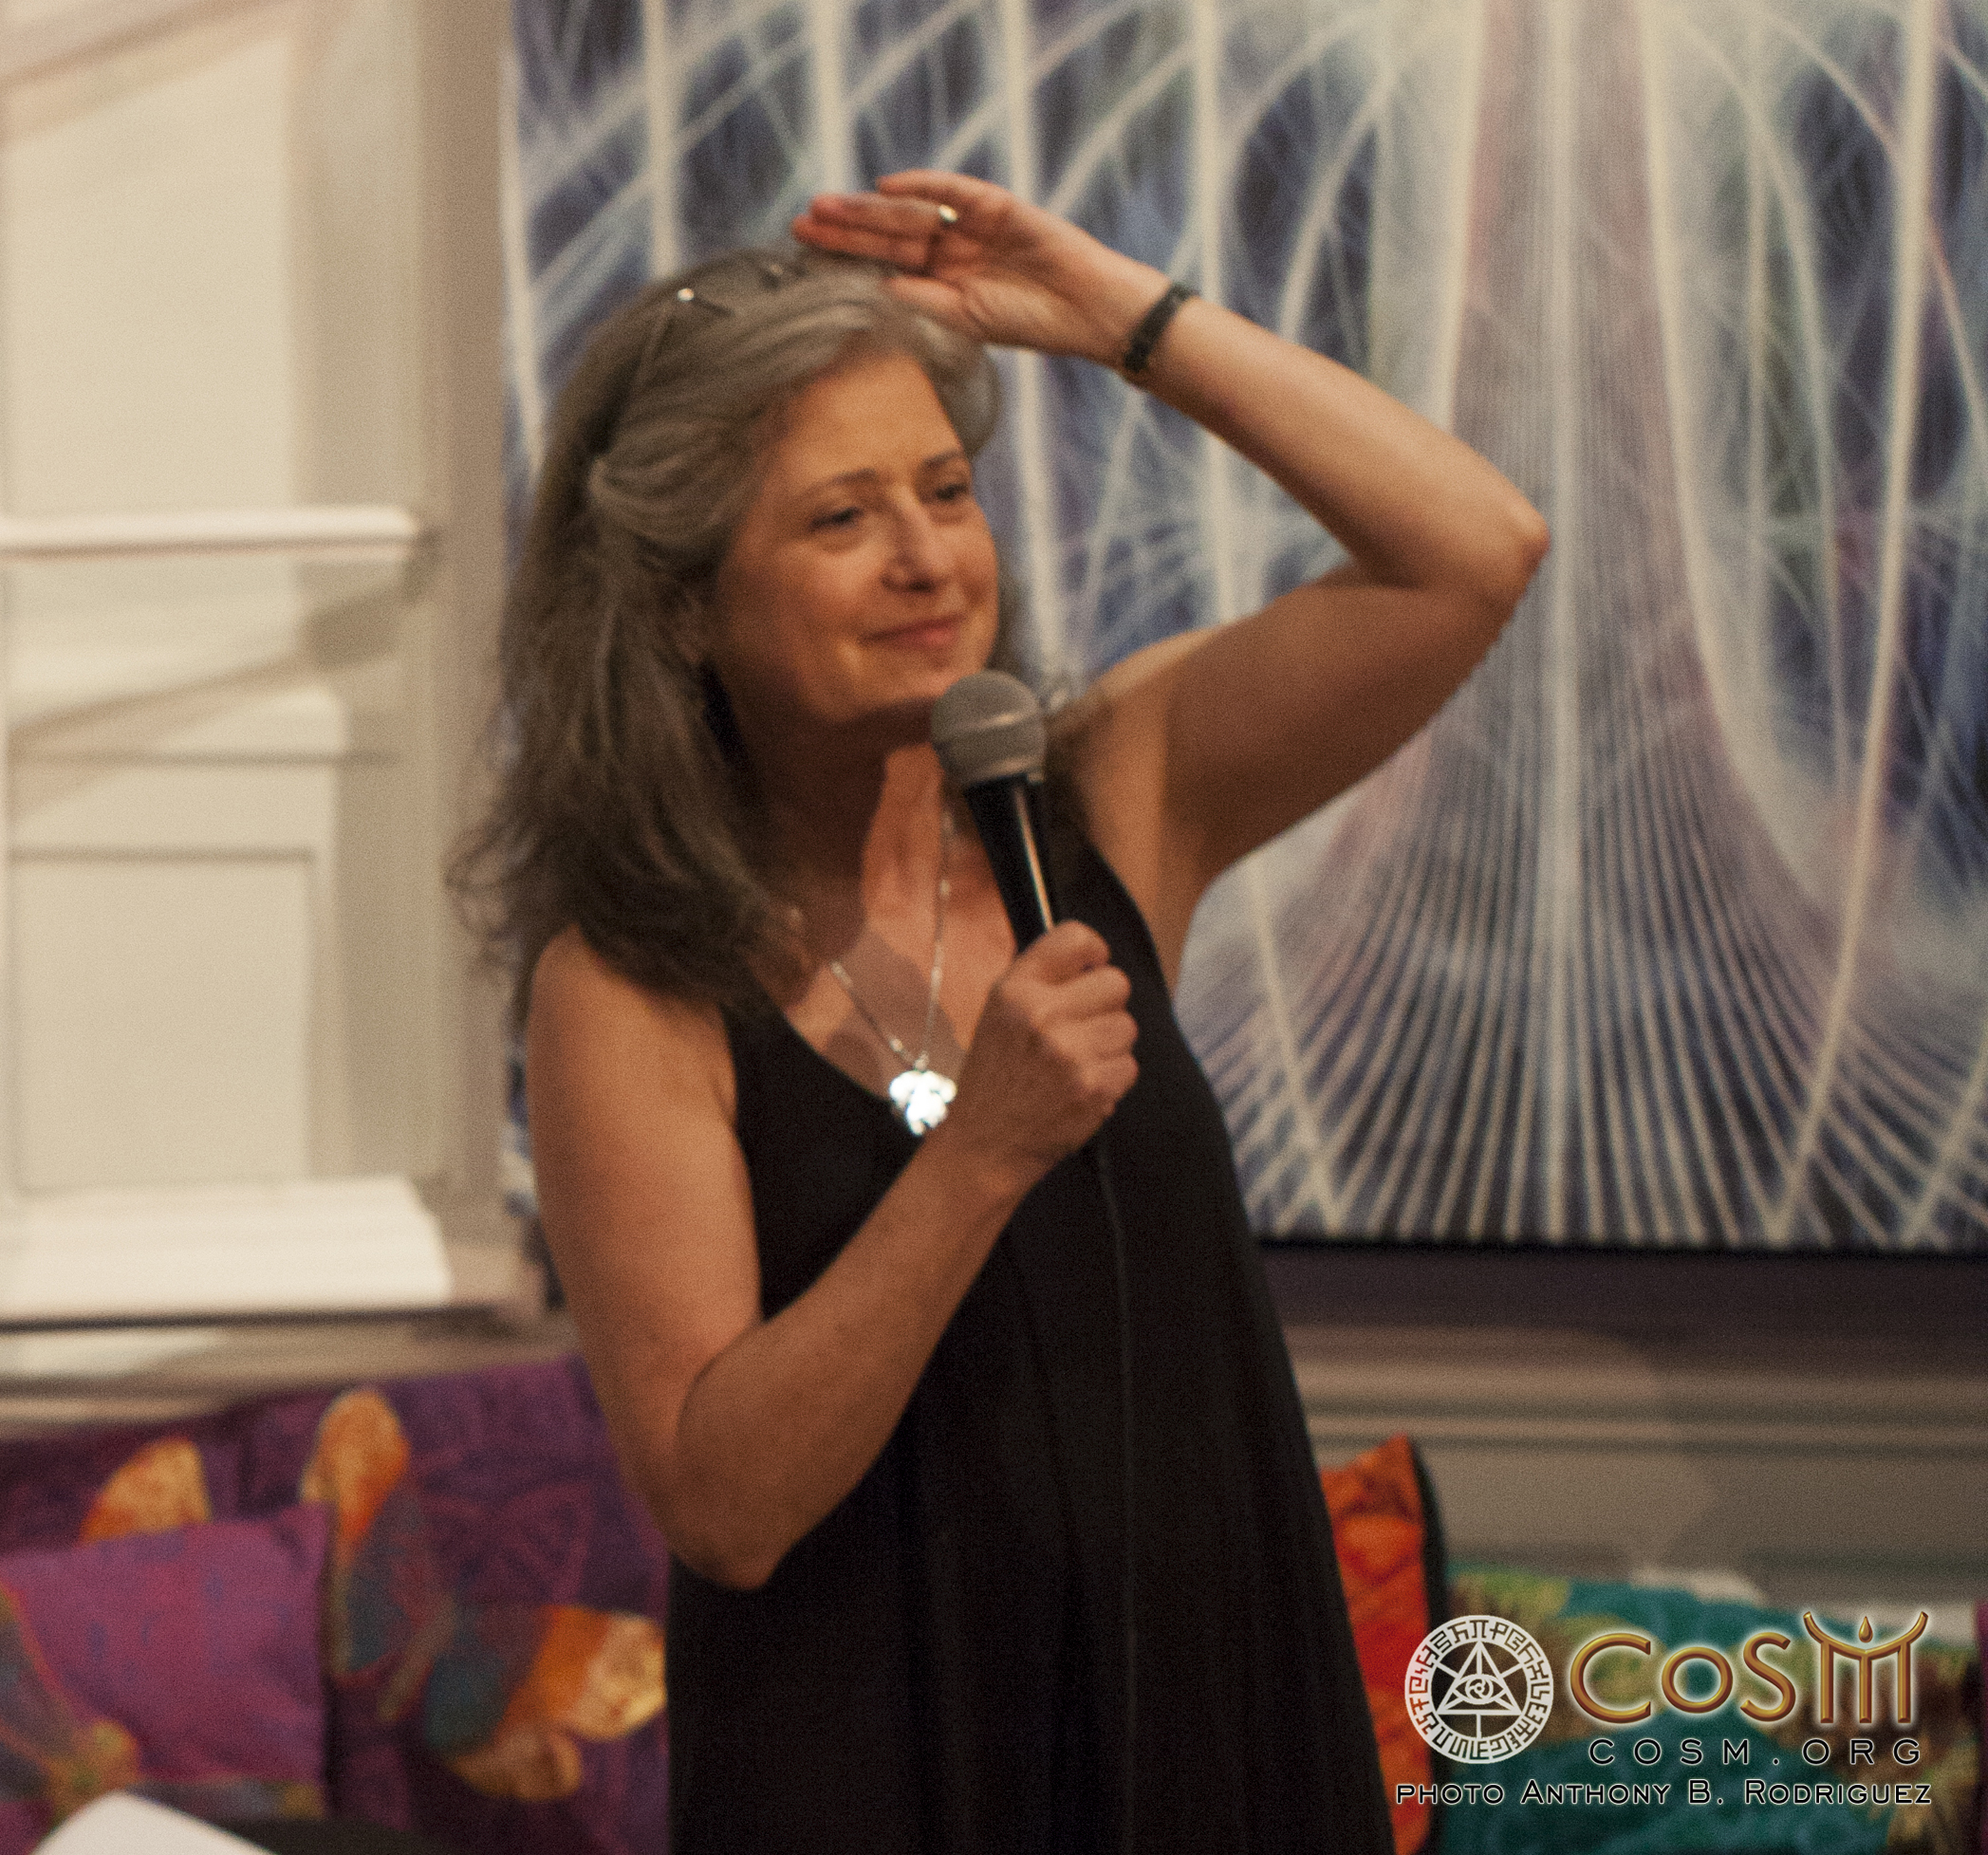 allyson-grey-full-moon-gathering-cosm